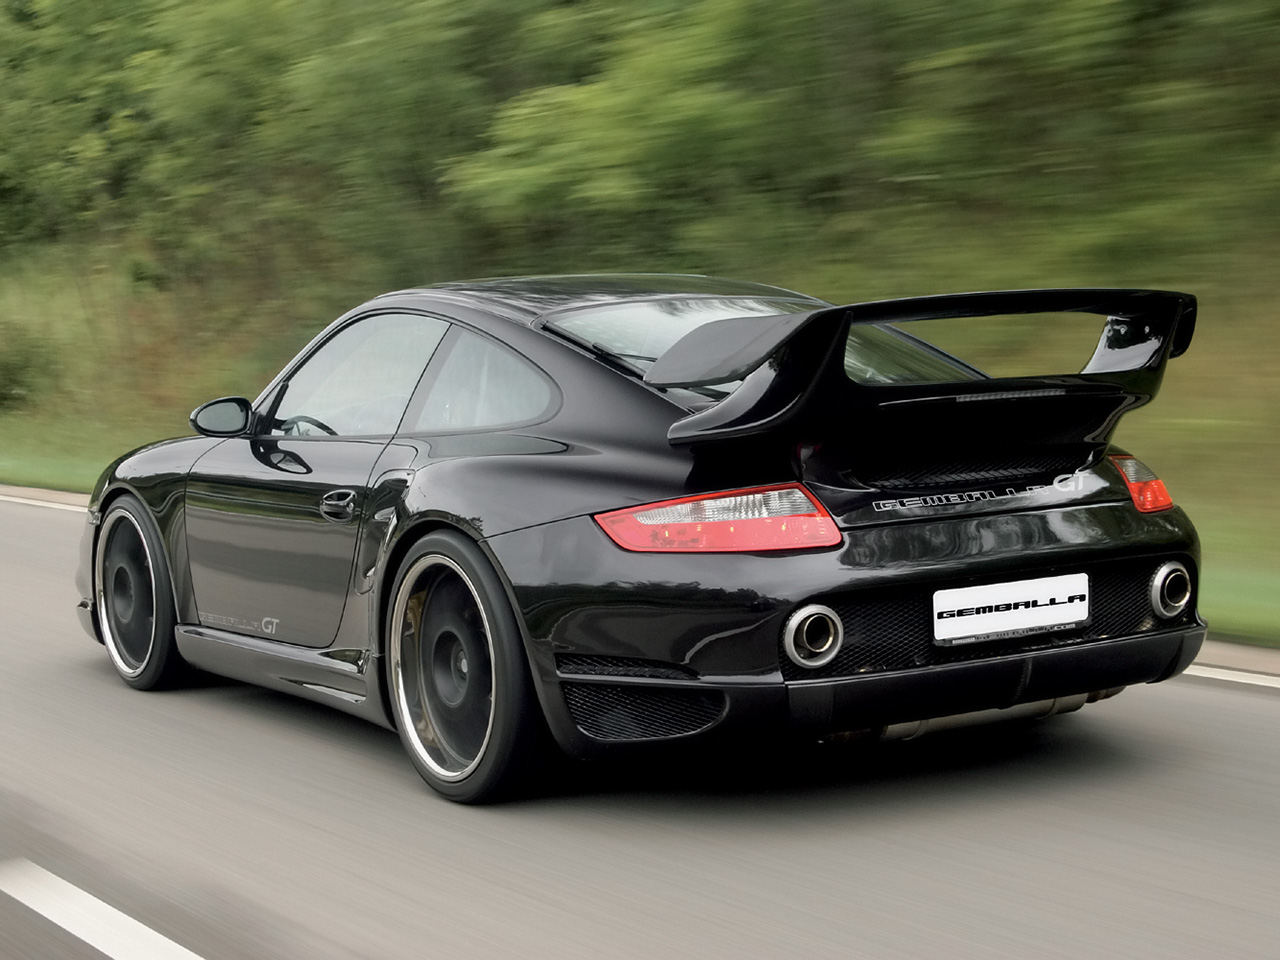 Gemballa Turbo Gt 550 Photos Photogallery With 4 Pics